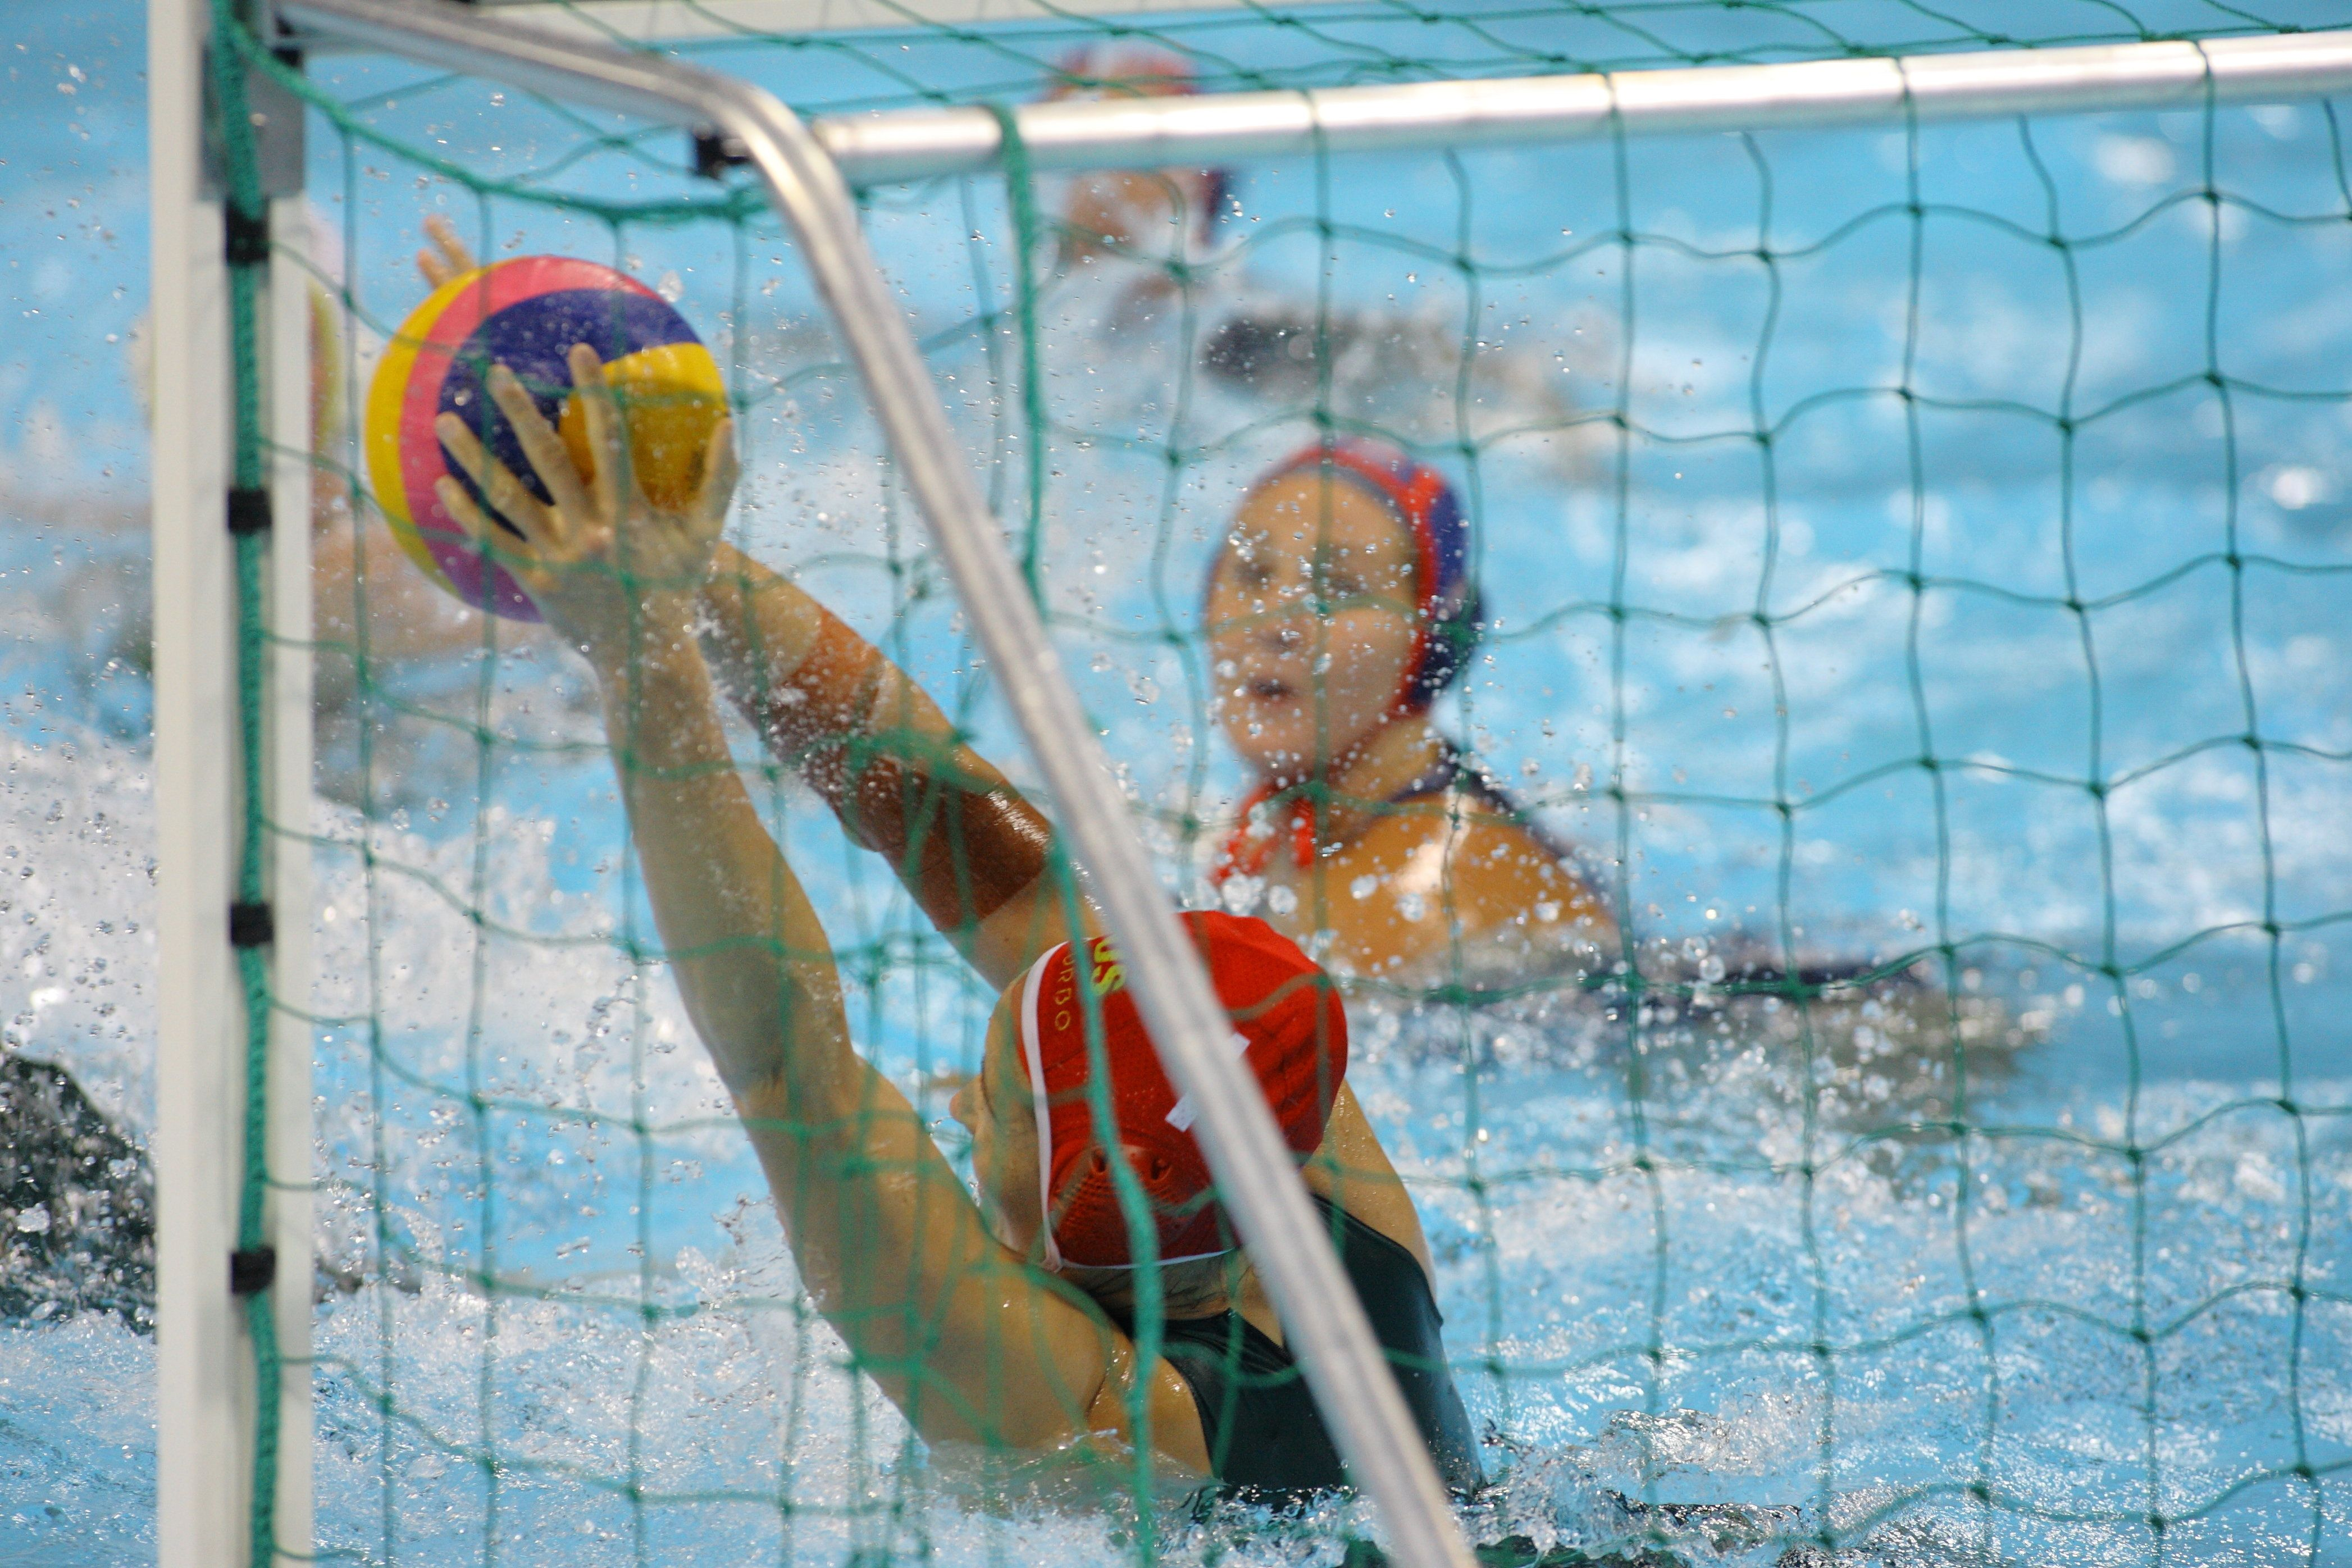 The Visa Water Polo International Women's competition, Australia vs USA at the Water Polo Arena London Olympic Park 4 May 2012 --- Image by �� Paul Cunningham/Corbis (Photo by Paul Cunningham/Corbis via Getty Images)